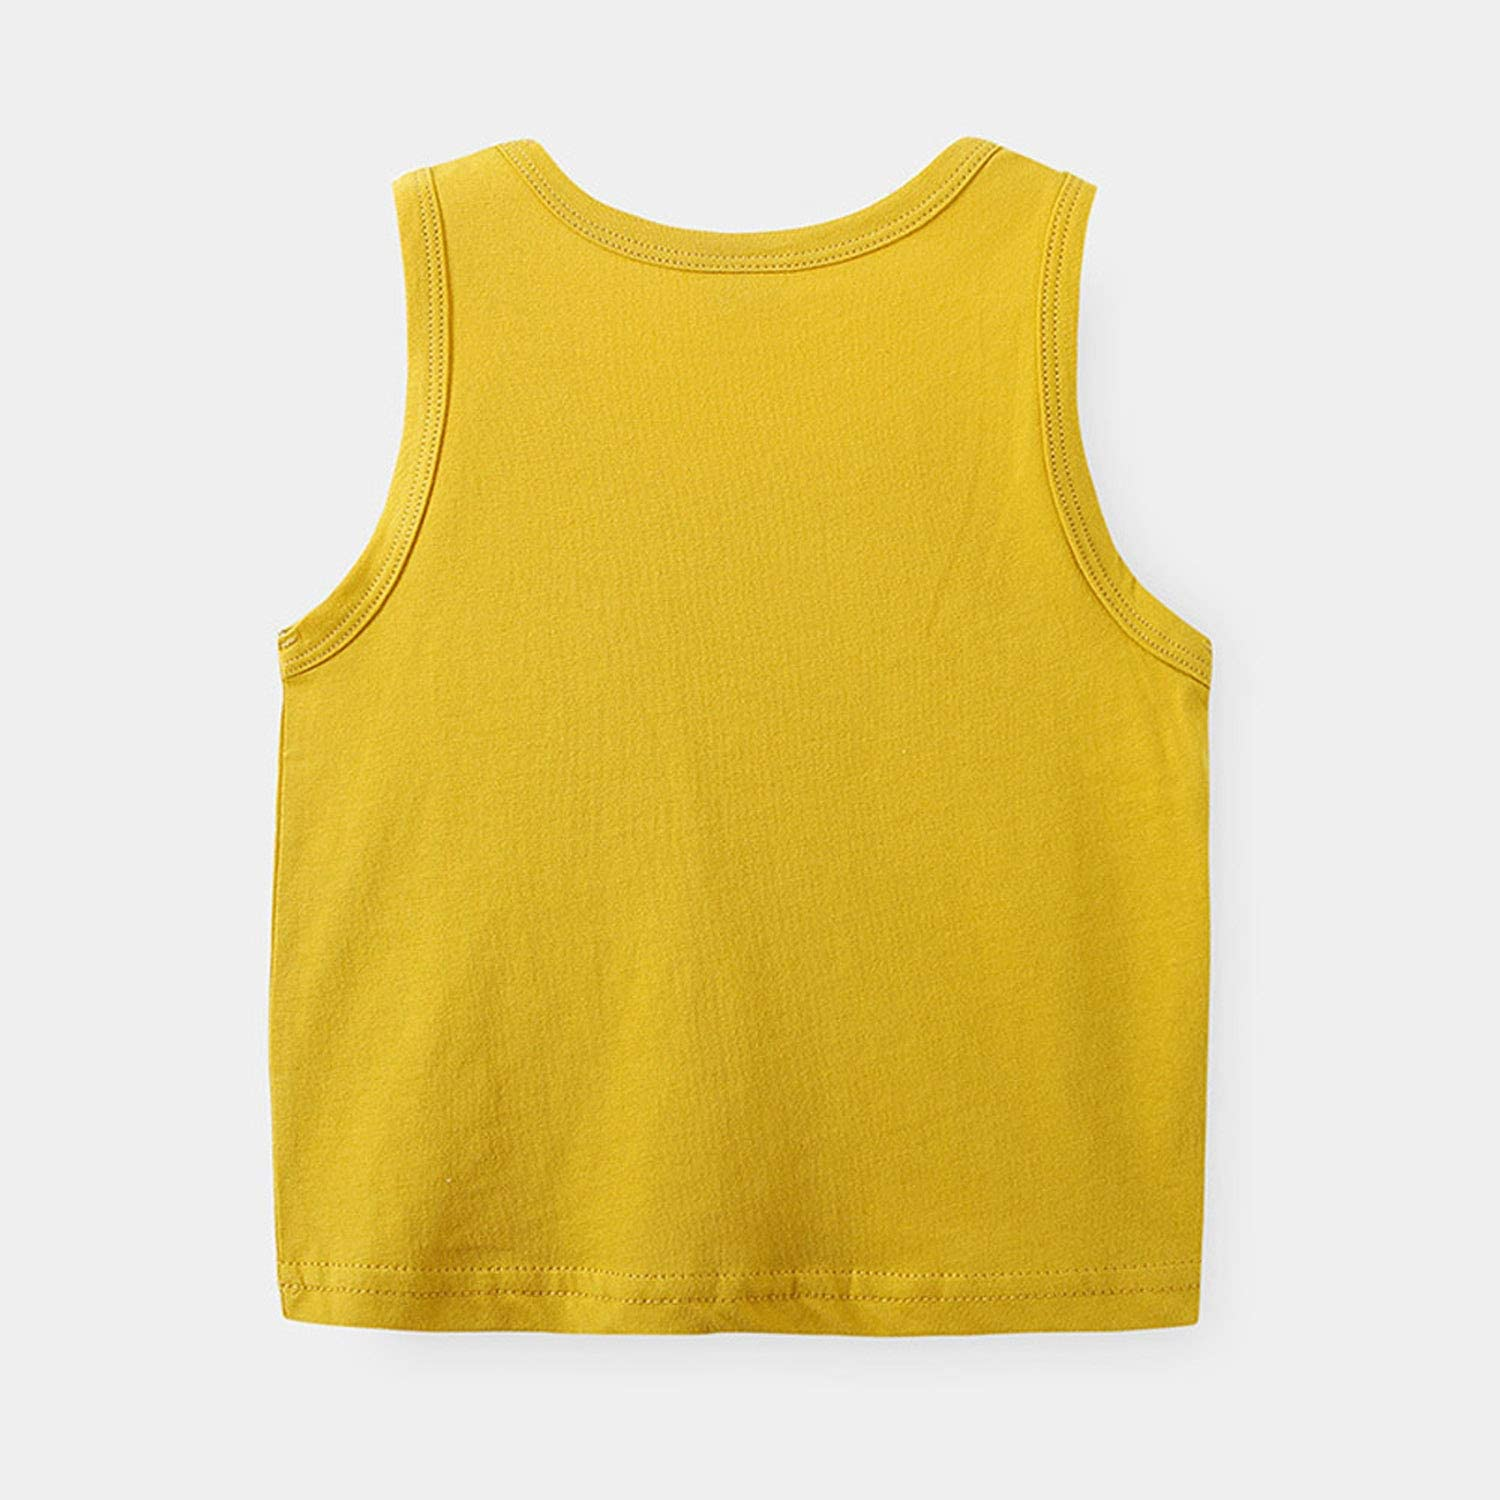 Huaer) Toddler Boys' 2-3 Pack Tank Tops (Blue+Yellow, 5T)